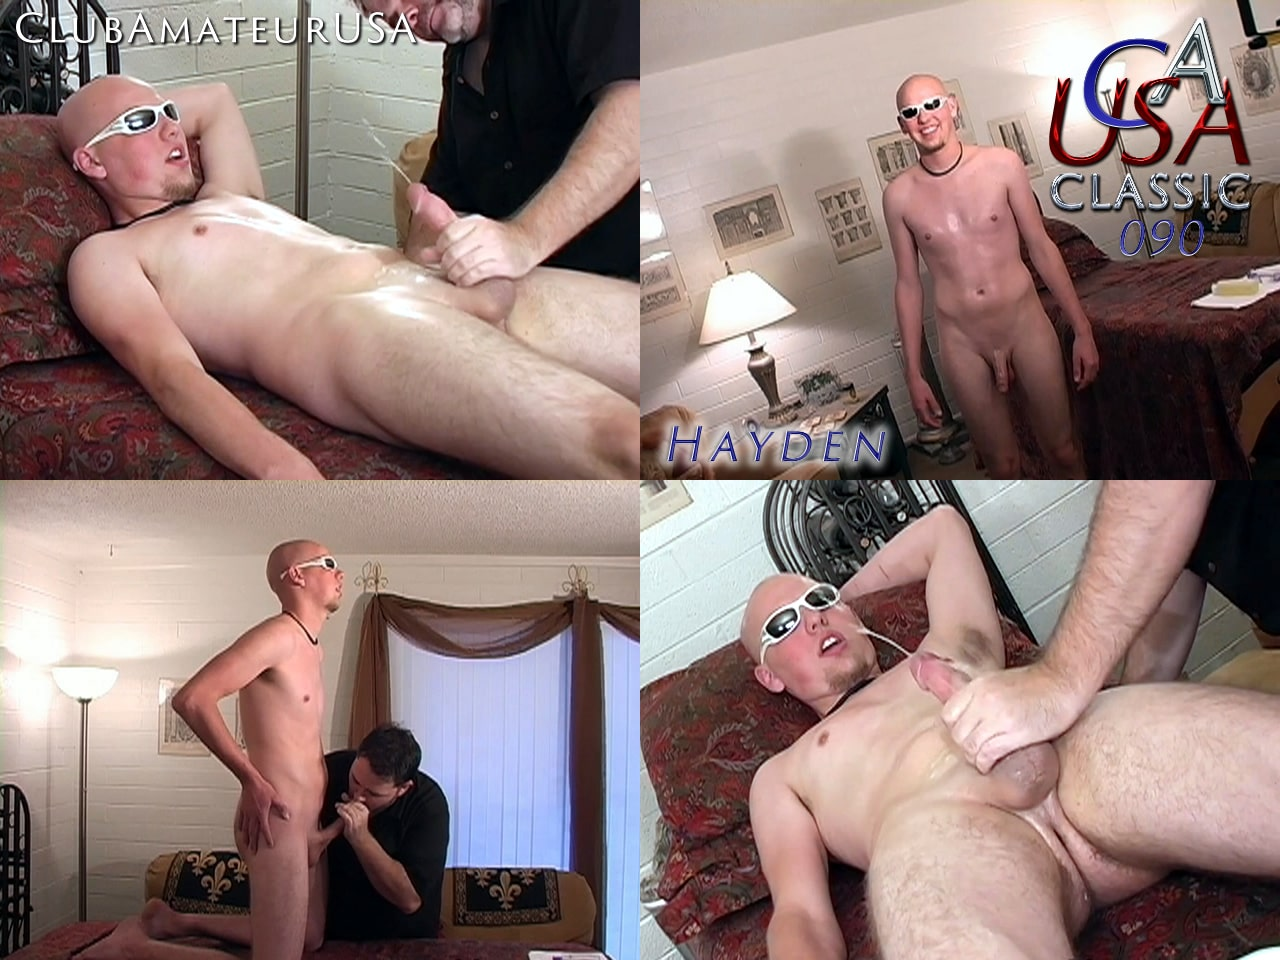 Classic CAUSA 090 Hayden - ClubAmateurUSA all i need to know about sex